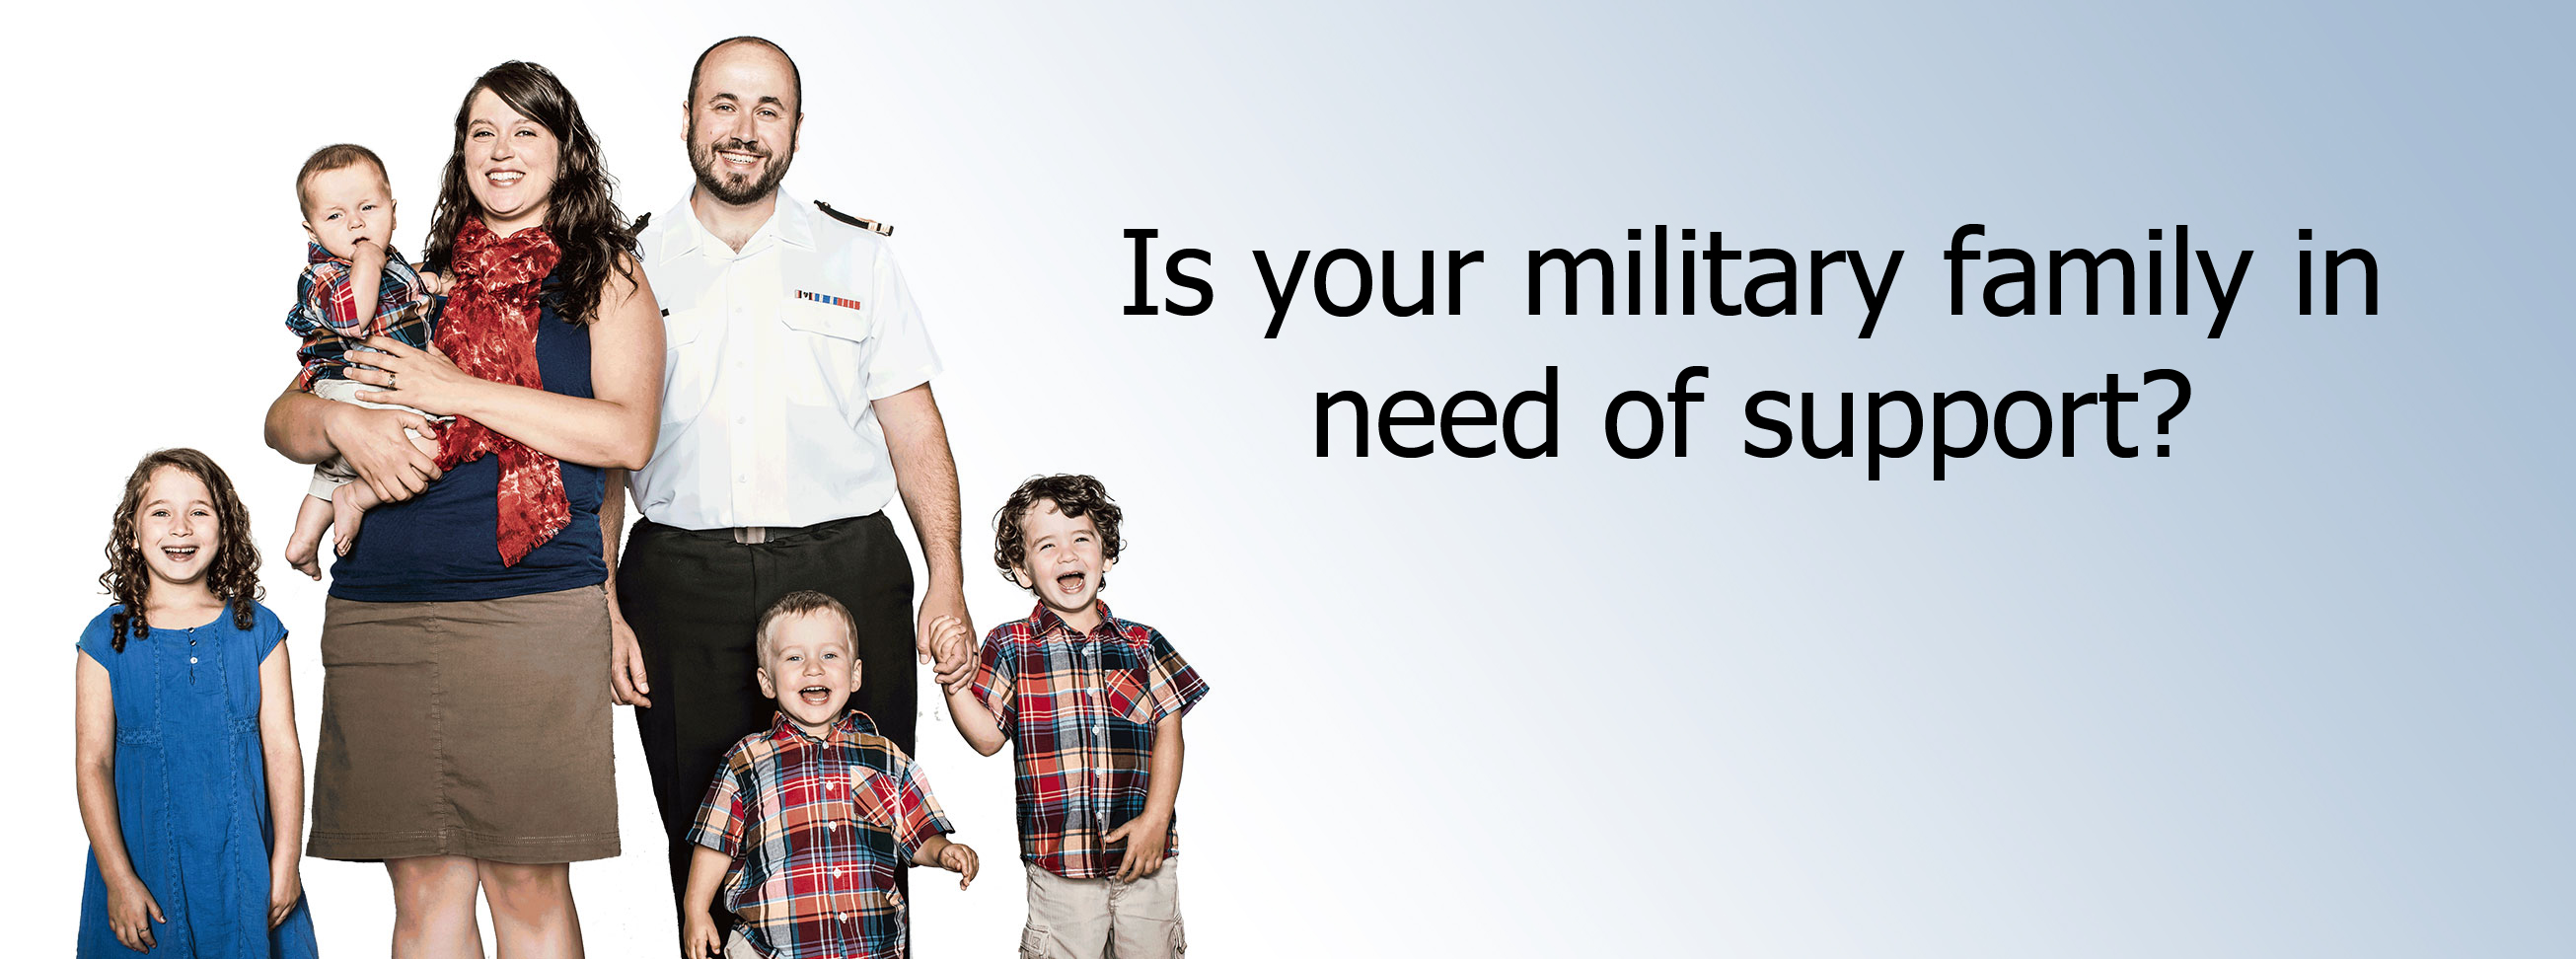 Is your military family in need of support?